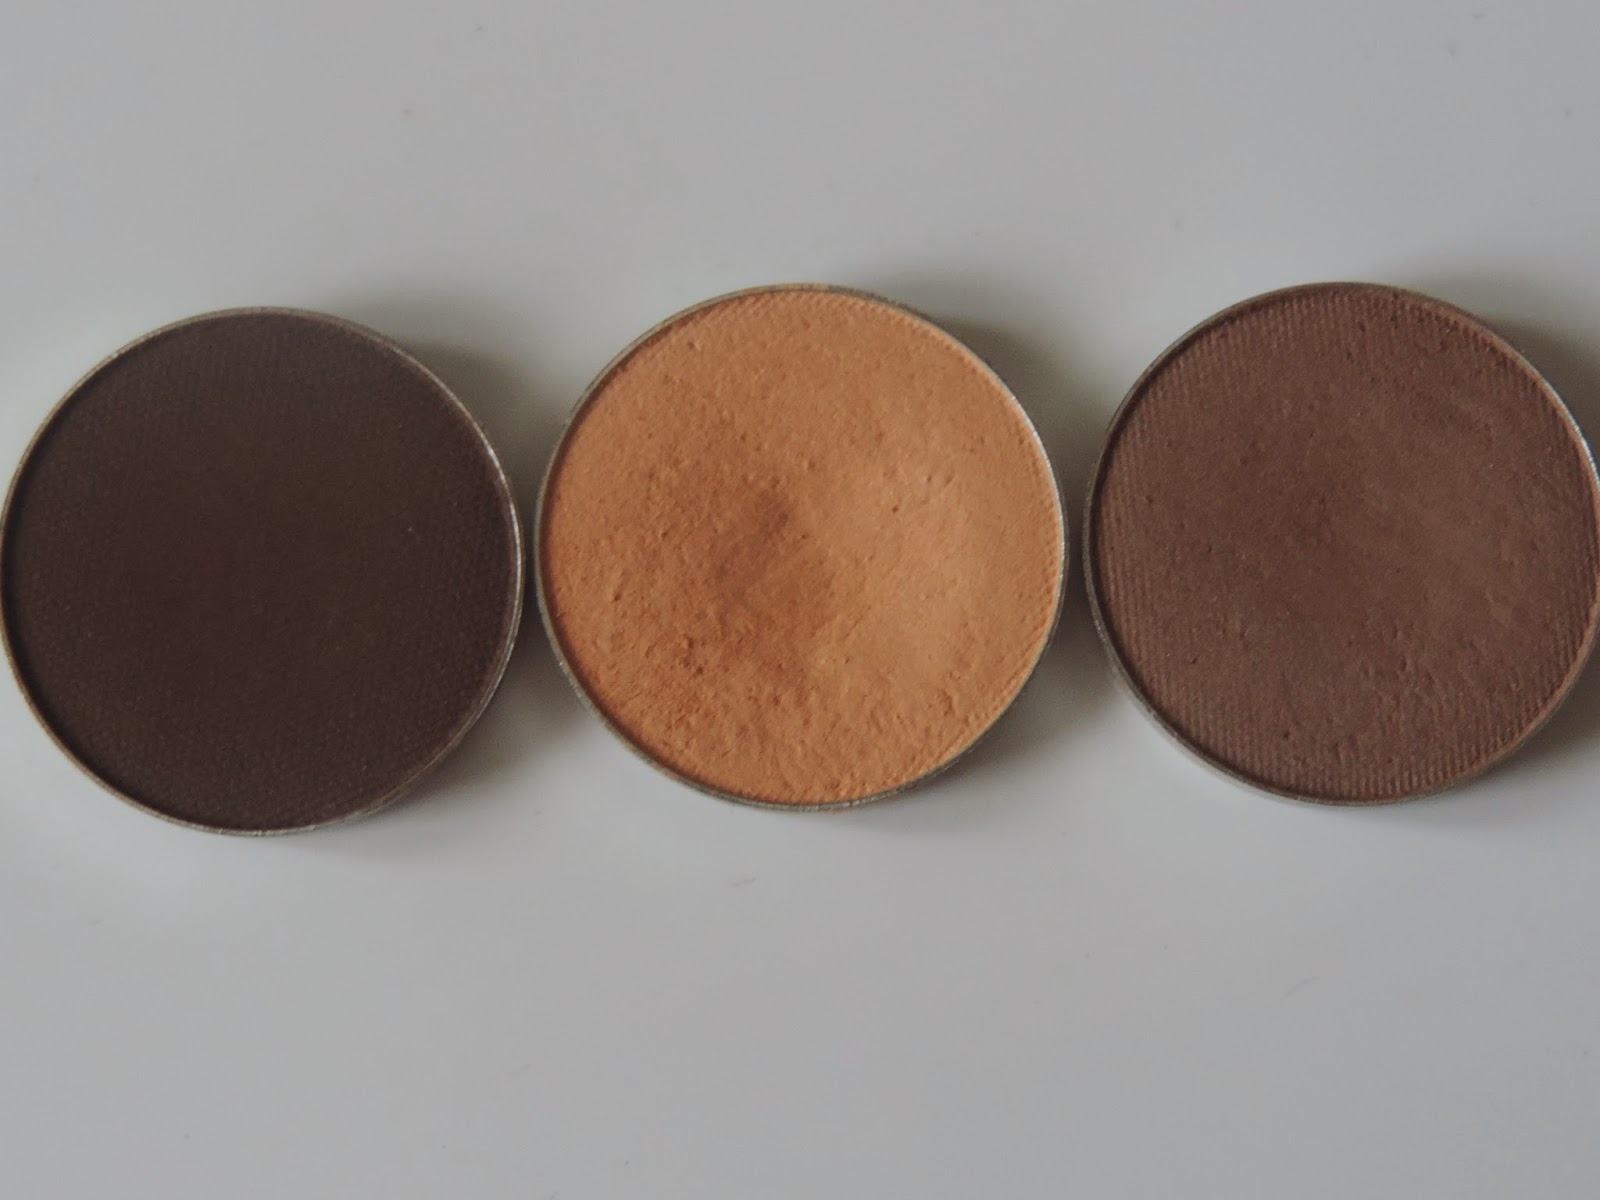 Makeup Geek Mocha, Peach Smoothie, Barcelona Beach